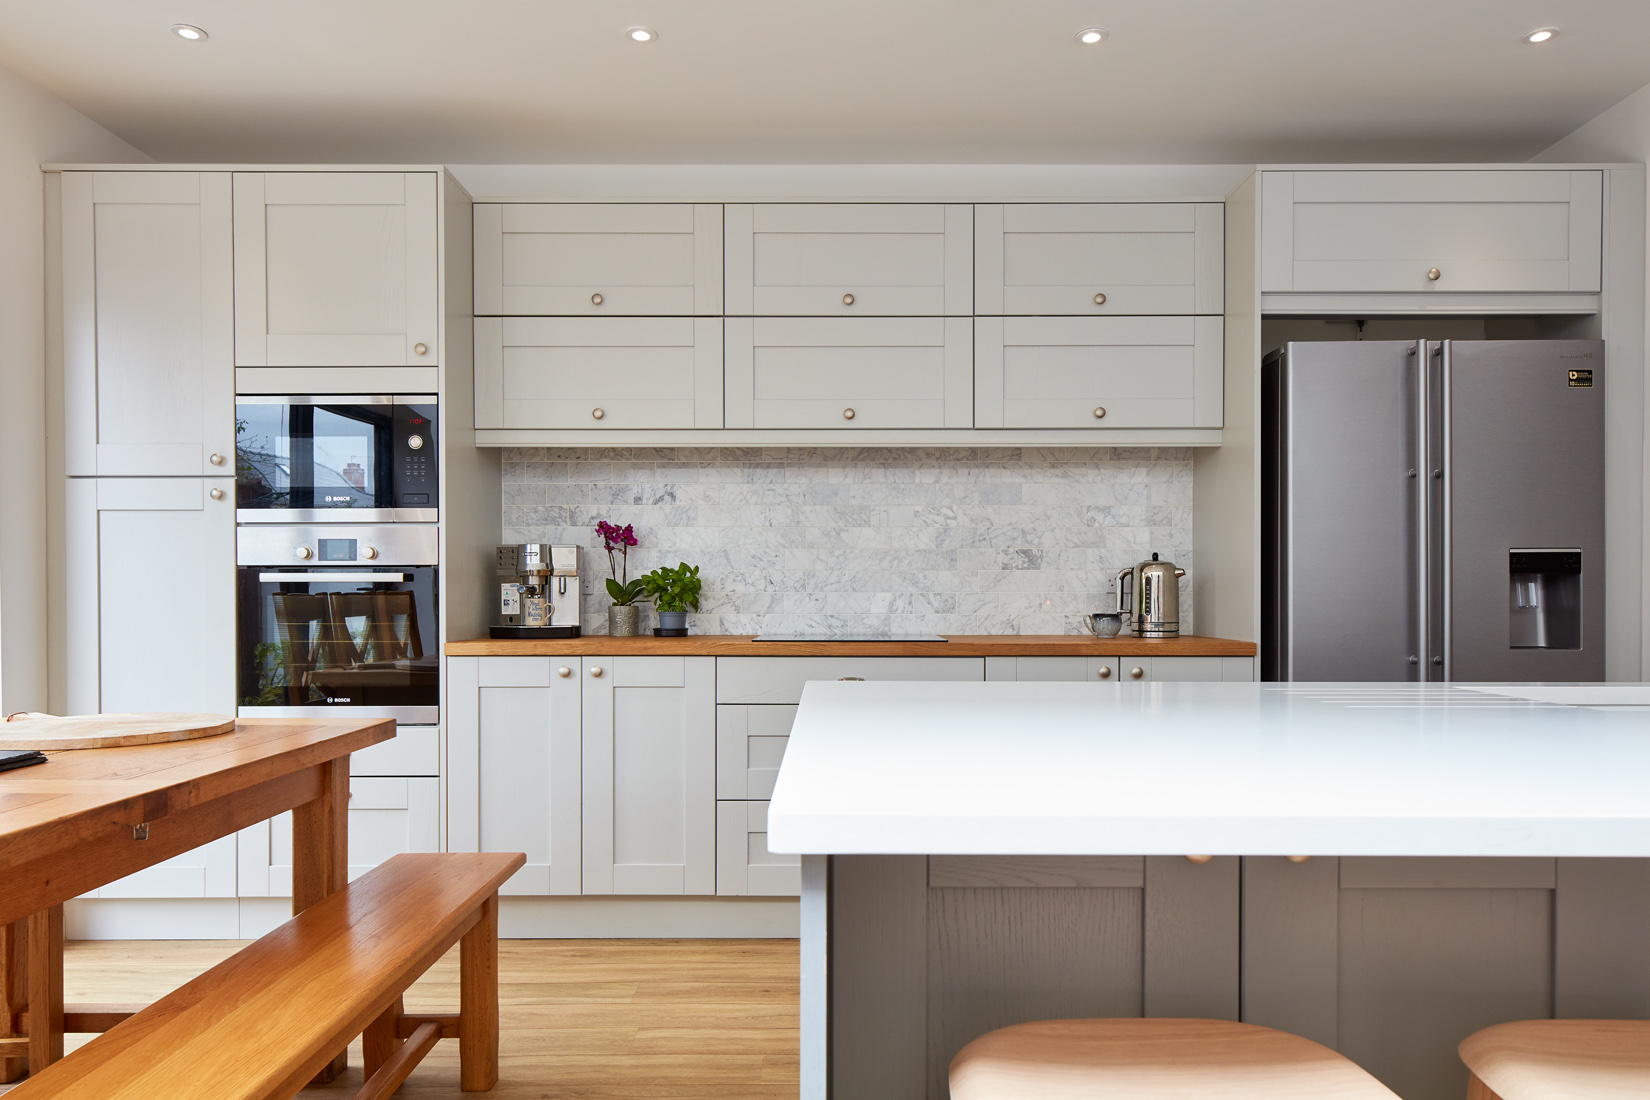 KITCHEN DESIGNER CARDIFF